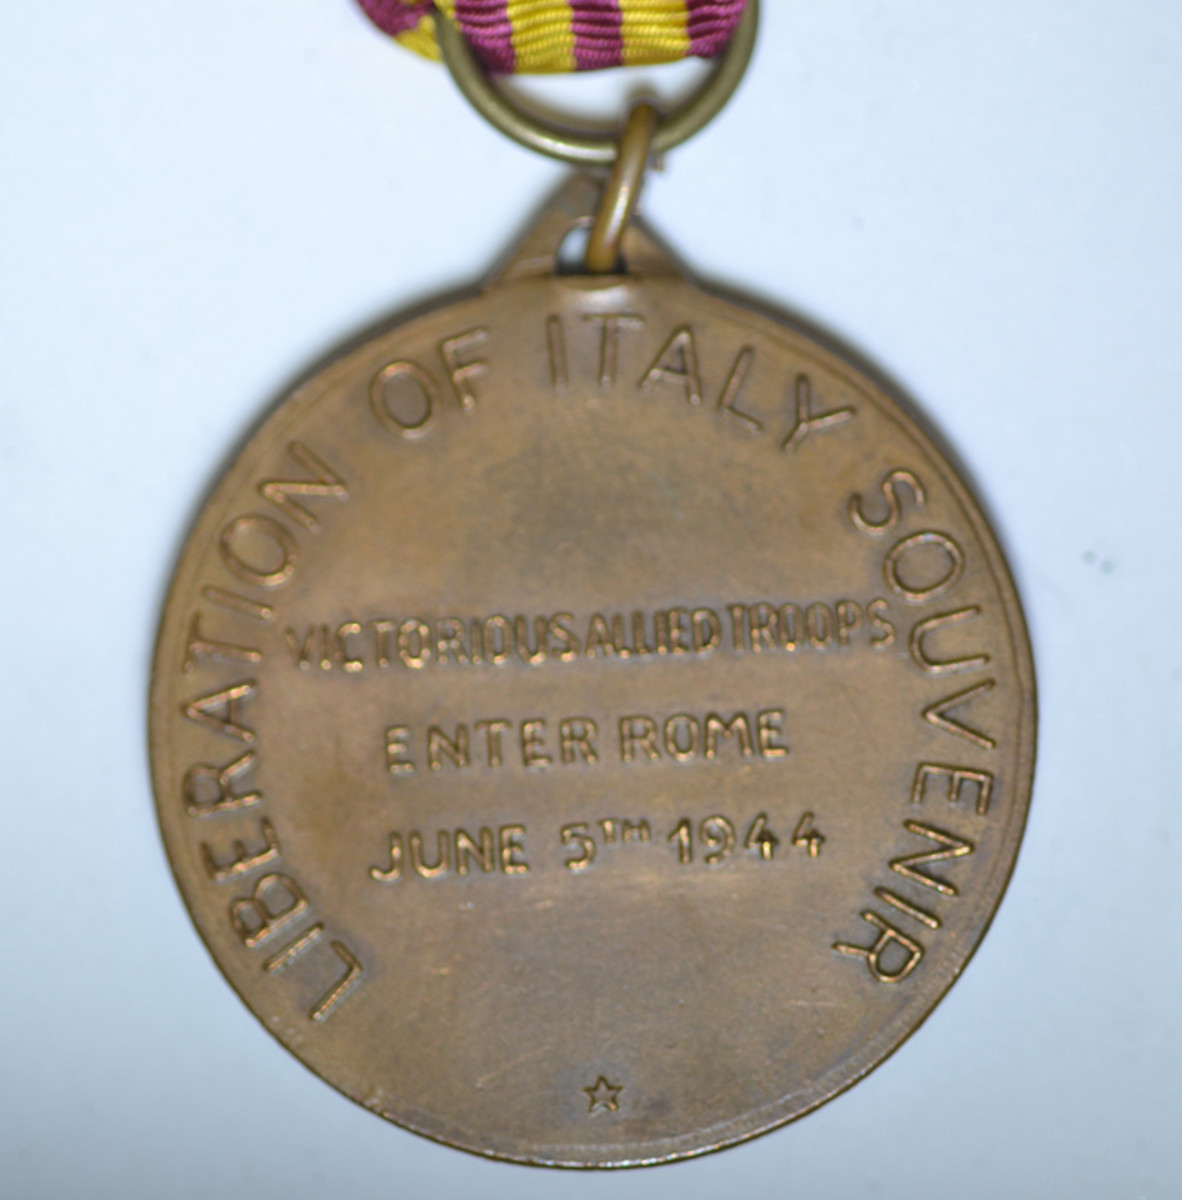 The large diameter Type 4 Liberation of Rome Medal exposes the souvenir nature of the medal.